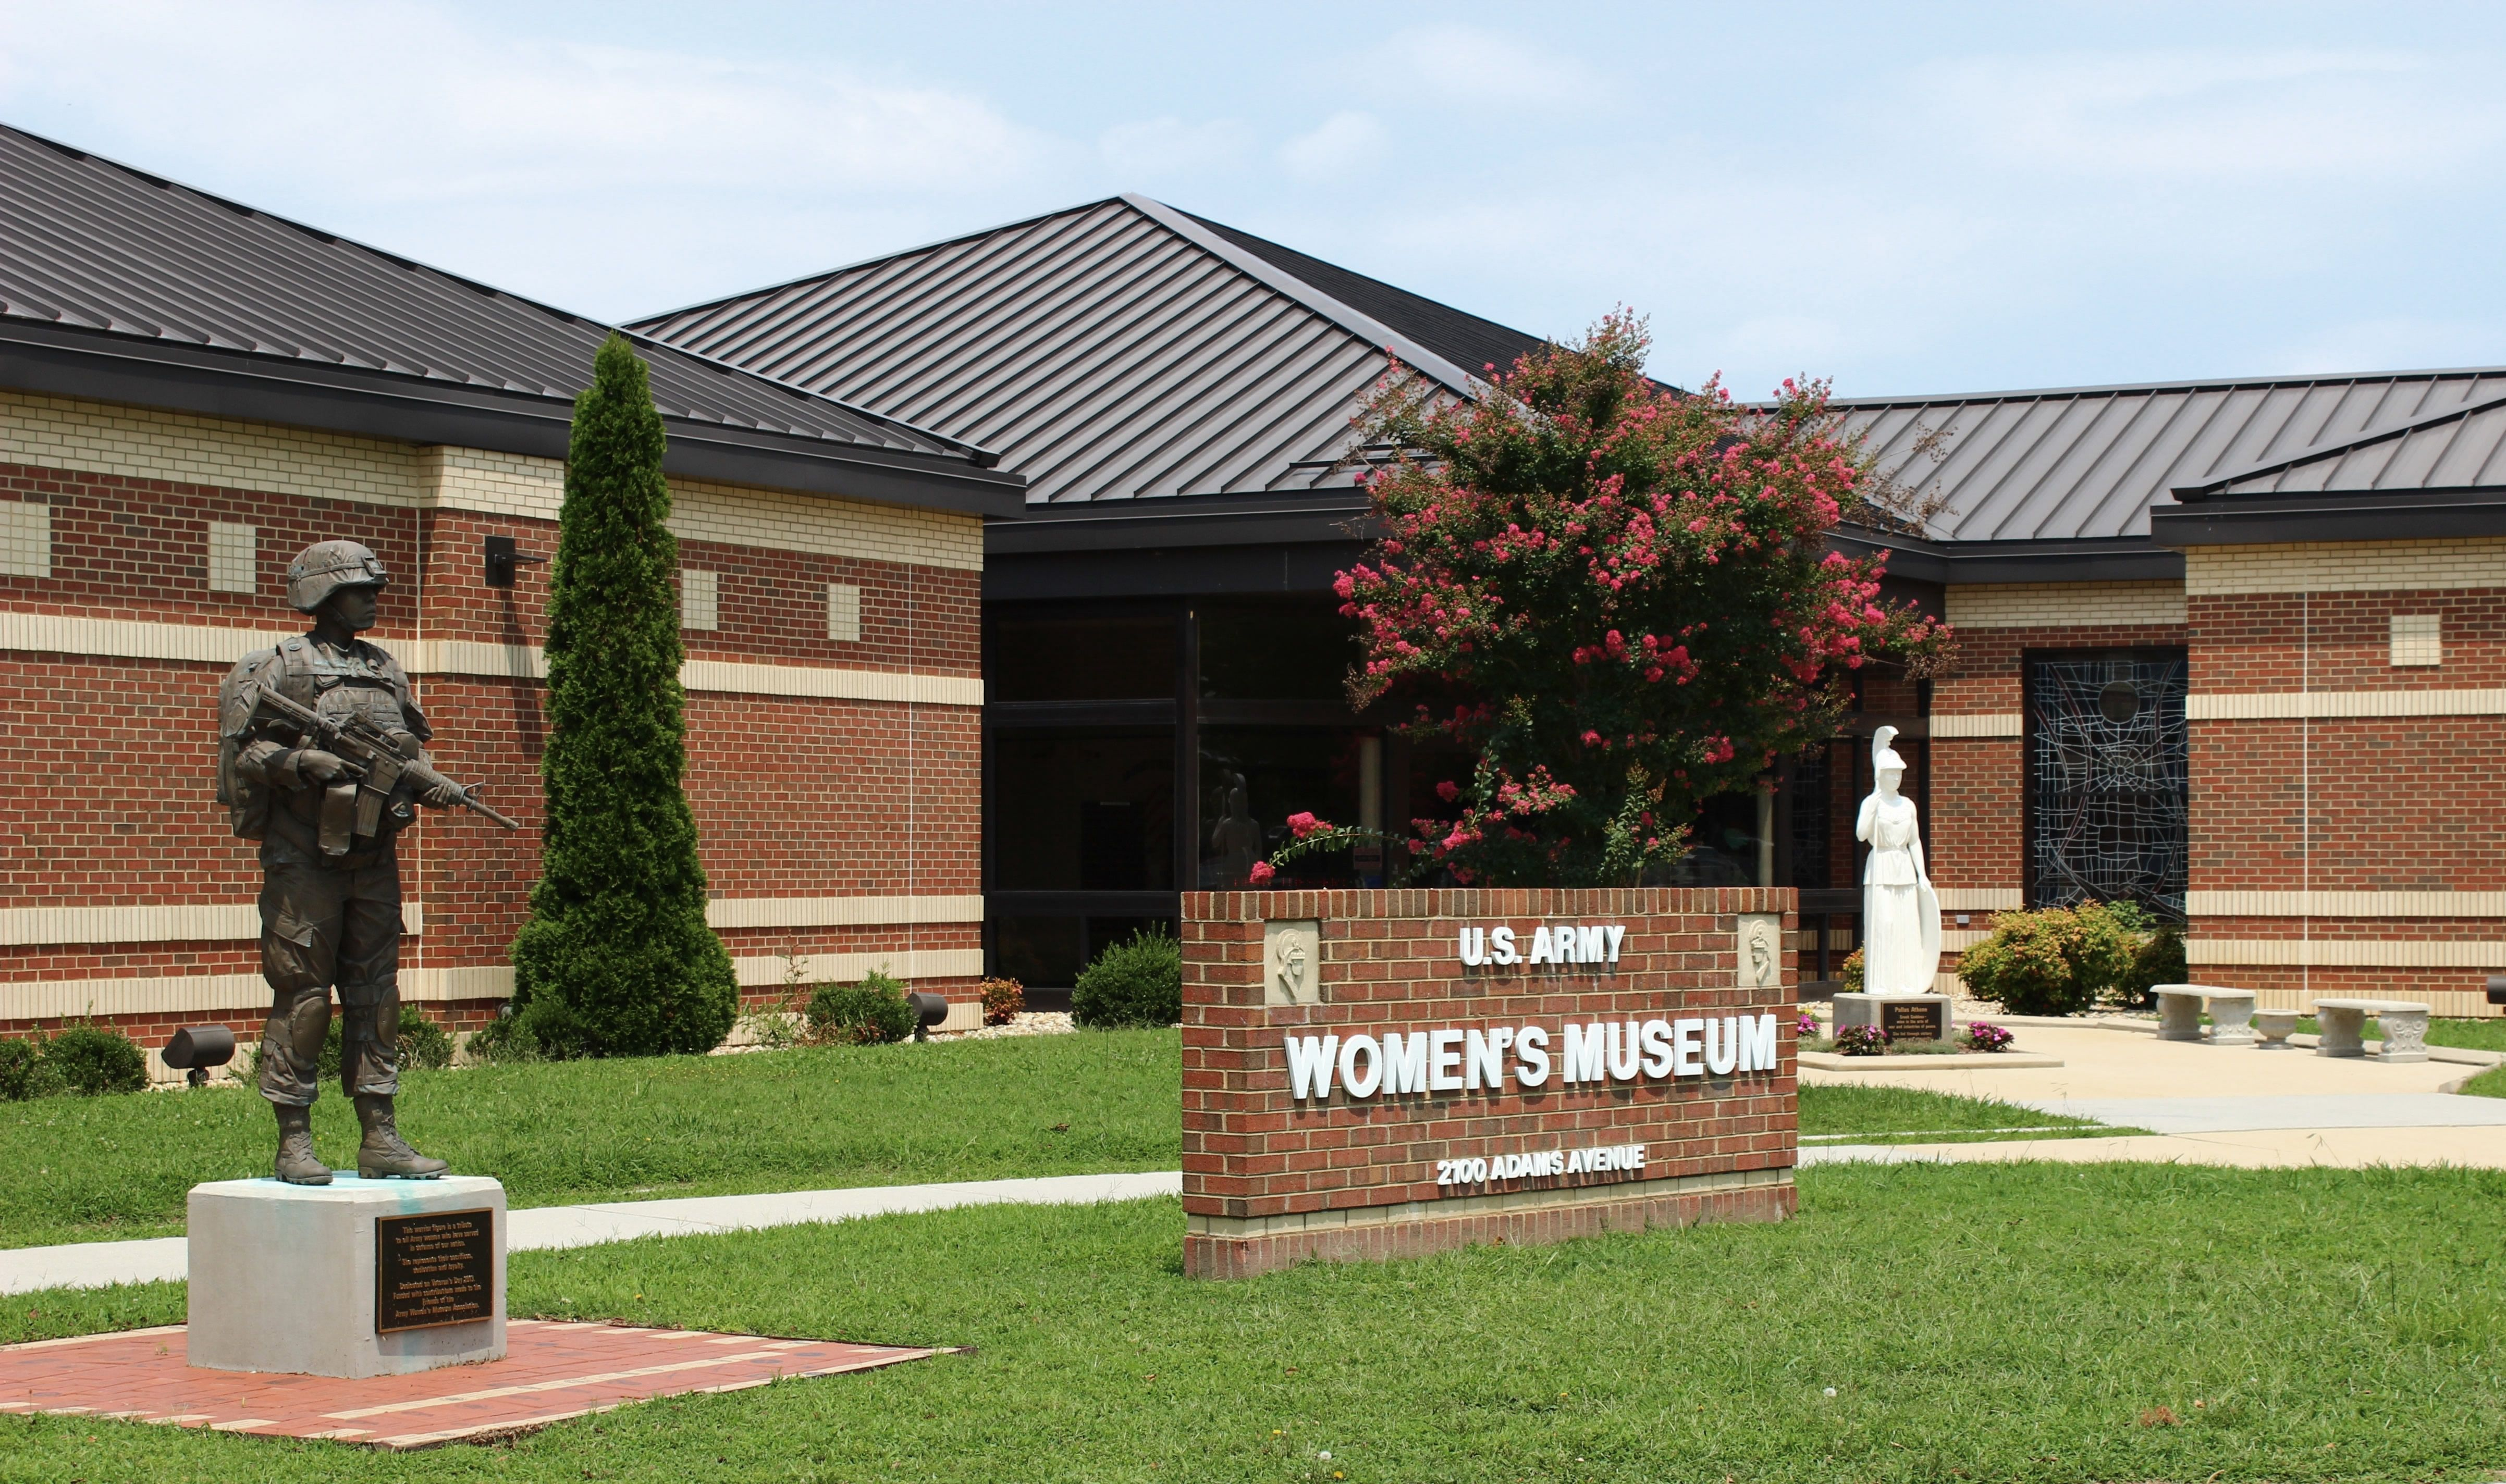 The U.S. Army Women's Museum is the only museum in the